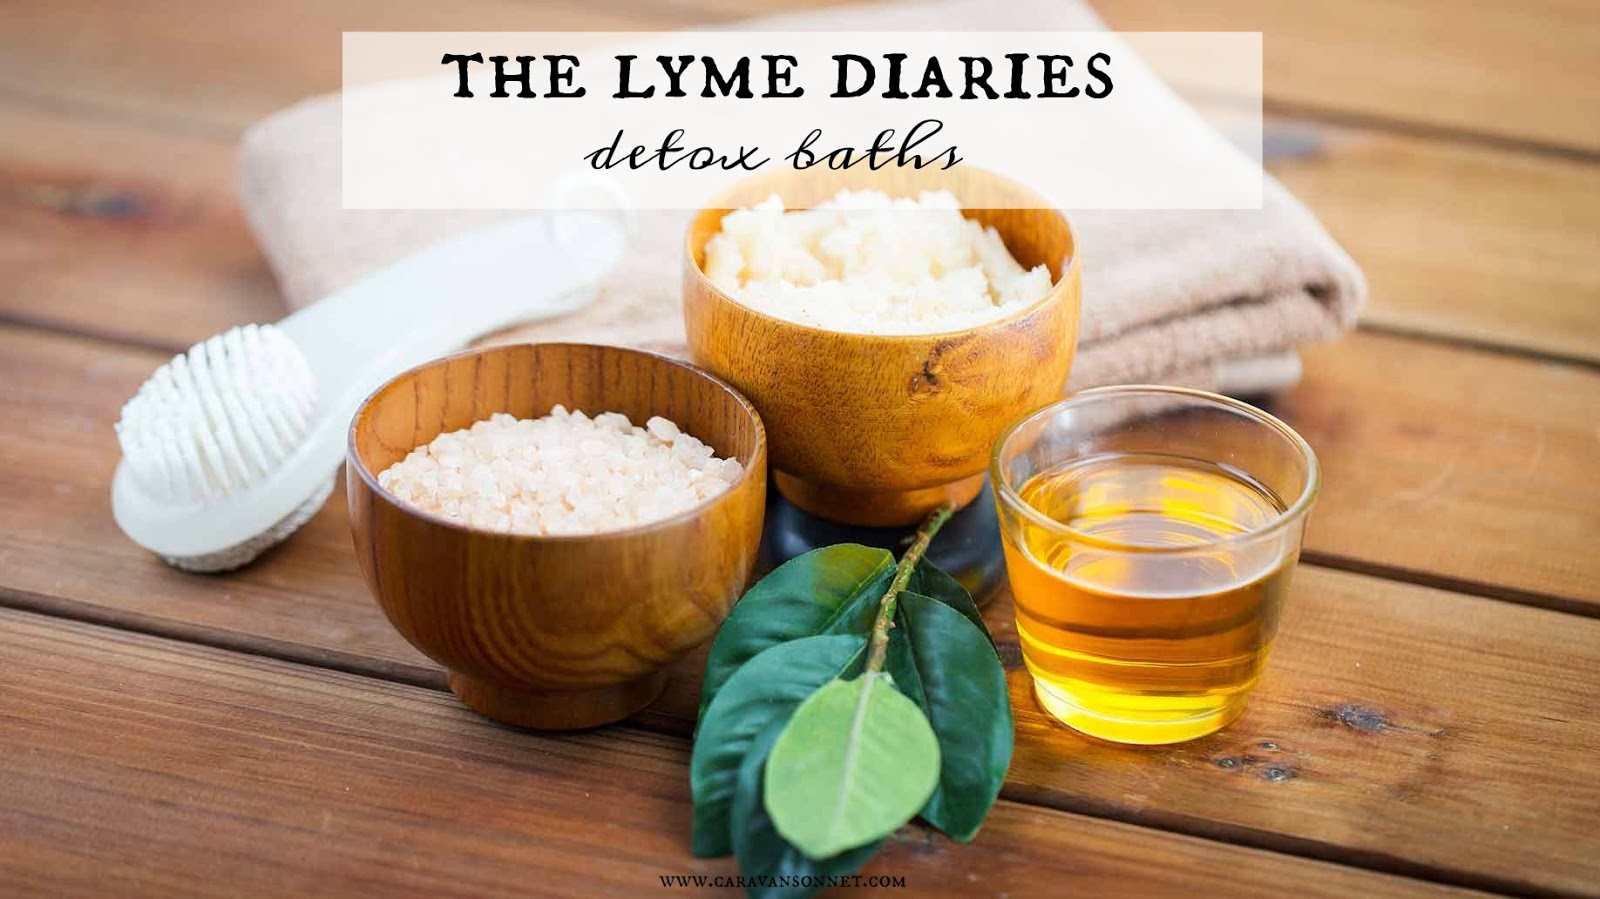 the Lyme Diaries: detox baths | Caravan Sonnet